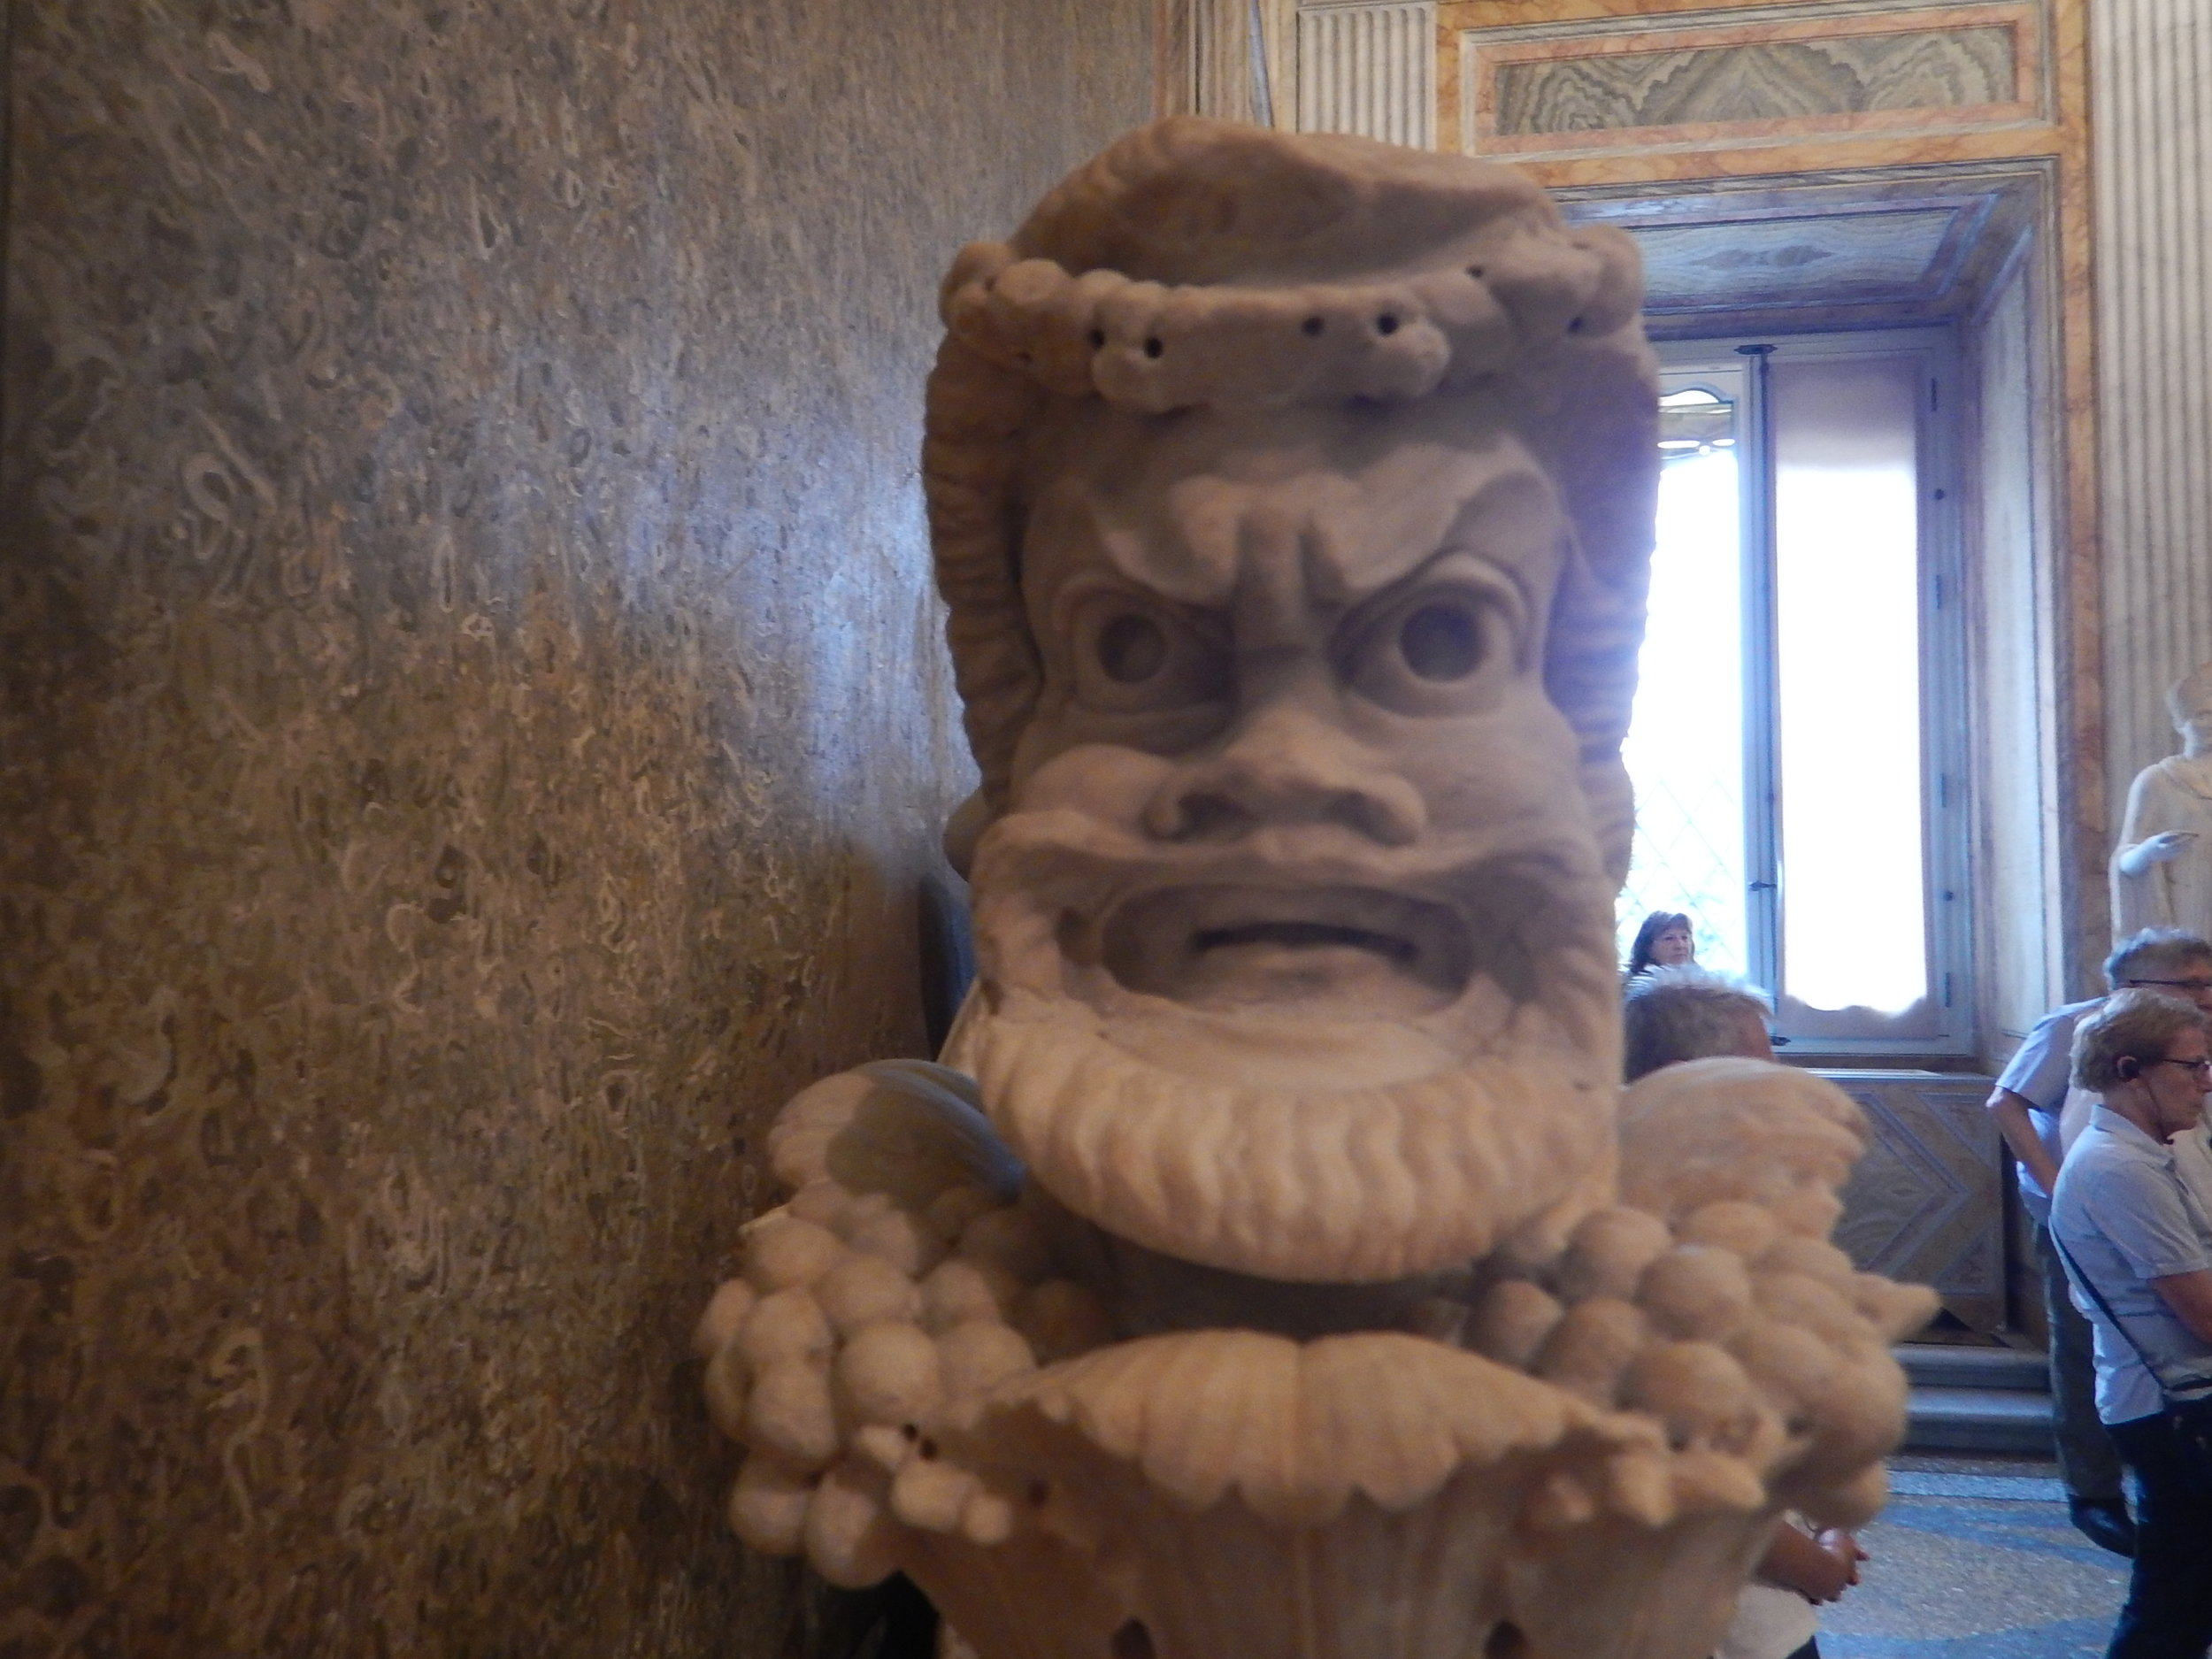 my bodyguard while in Rome!